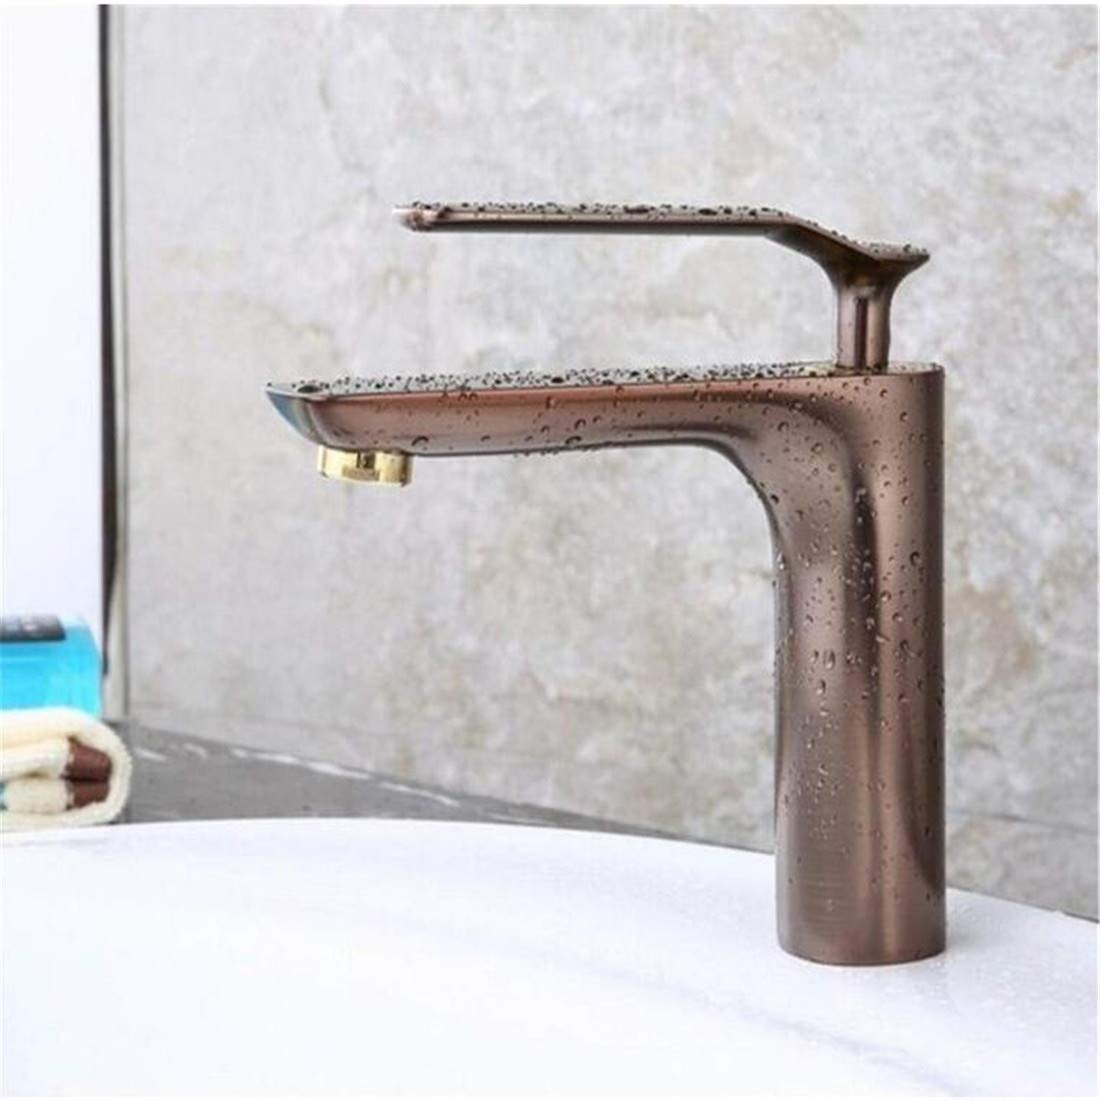 Modern High Quality Vintage Faucetbathroom Faucet Brown Color Color Color Basin Sink Faucet Copper Mixer a1404e